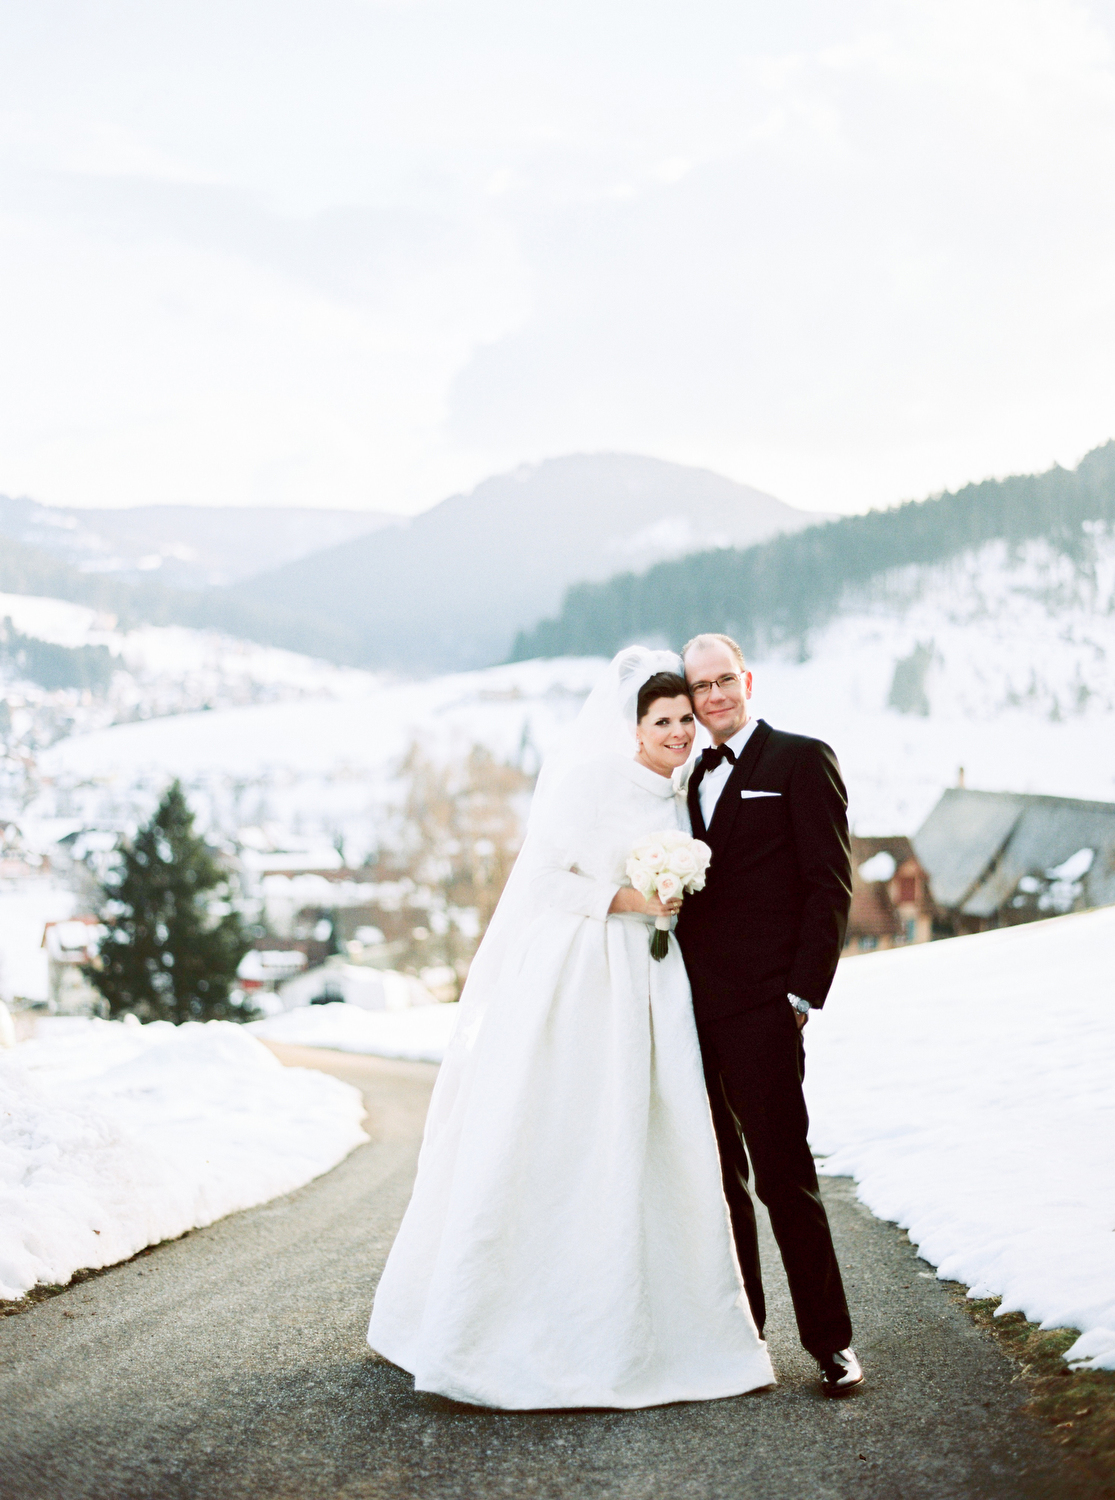 Fotograf Konstanz - Hochzeit Stephanie Stefan Baiersbronn Bareiss Elmar Feuerbacher Photography 572 - Noble winter wedding in Baiersbronn in Bareiss  - 76 -